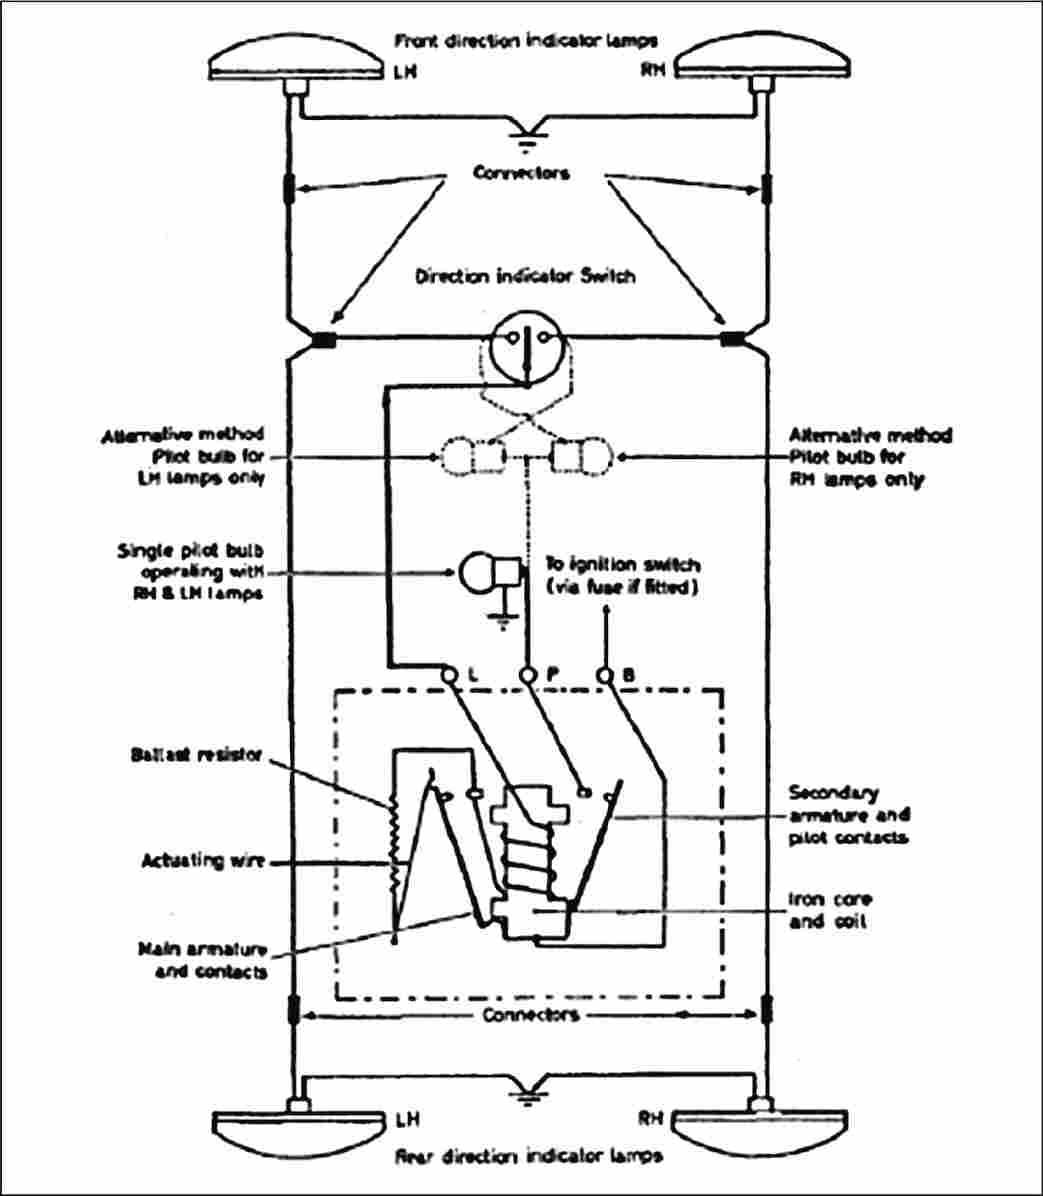 standard_flasher_diagram modern flasher circuits flasher unit wiring diagram at panicattacktreatment.co